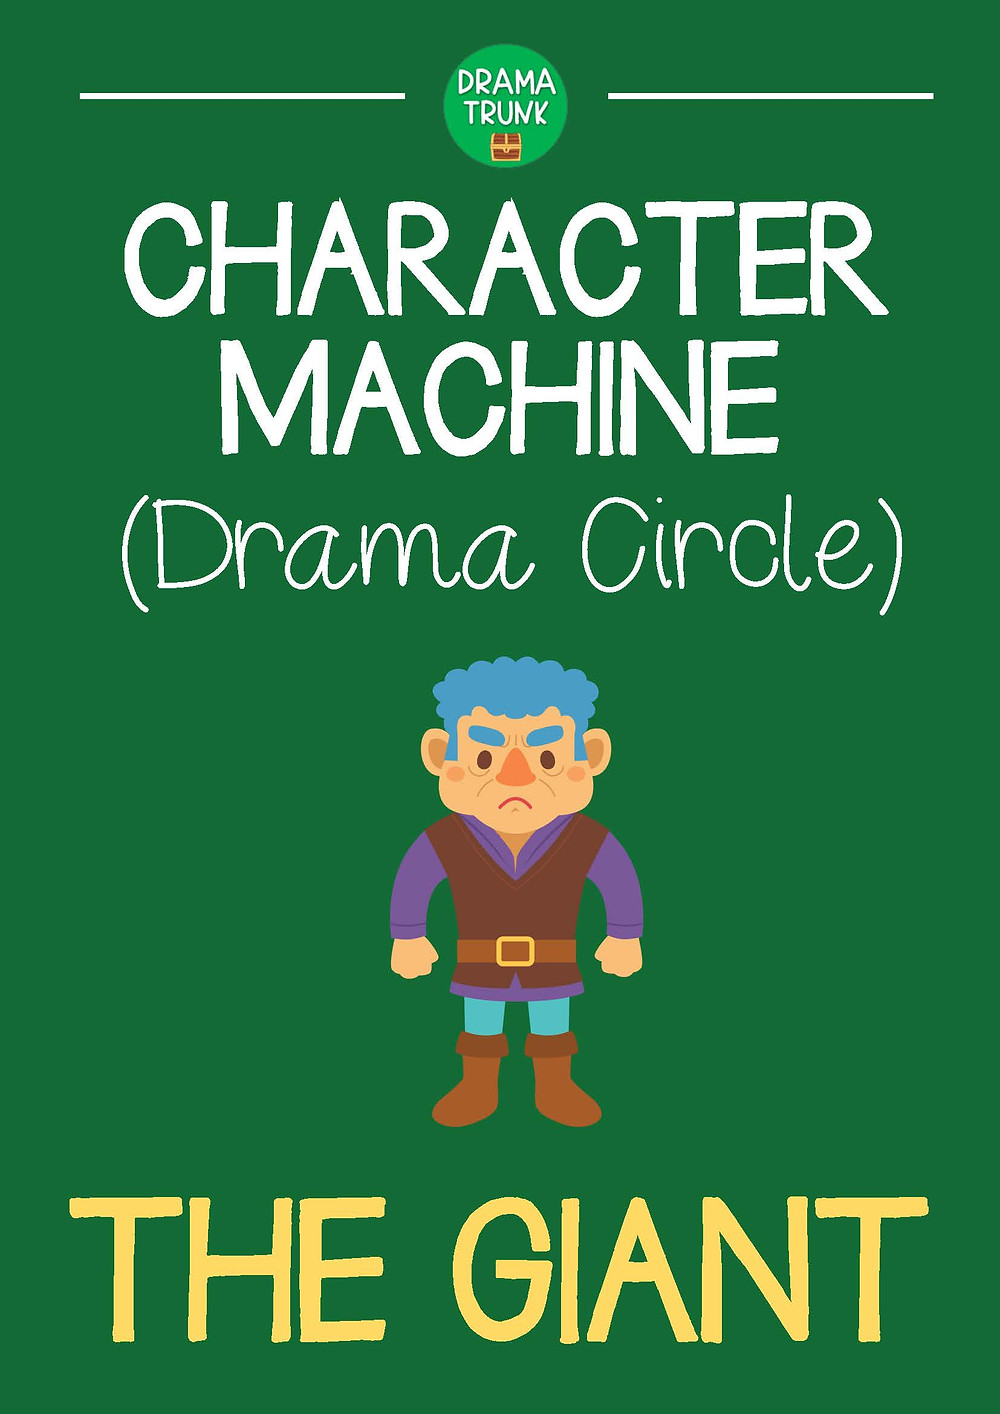 THE GIANT Drama Circle Readers Theater Acting Script for Kids and Teens